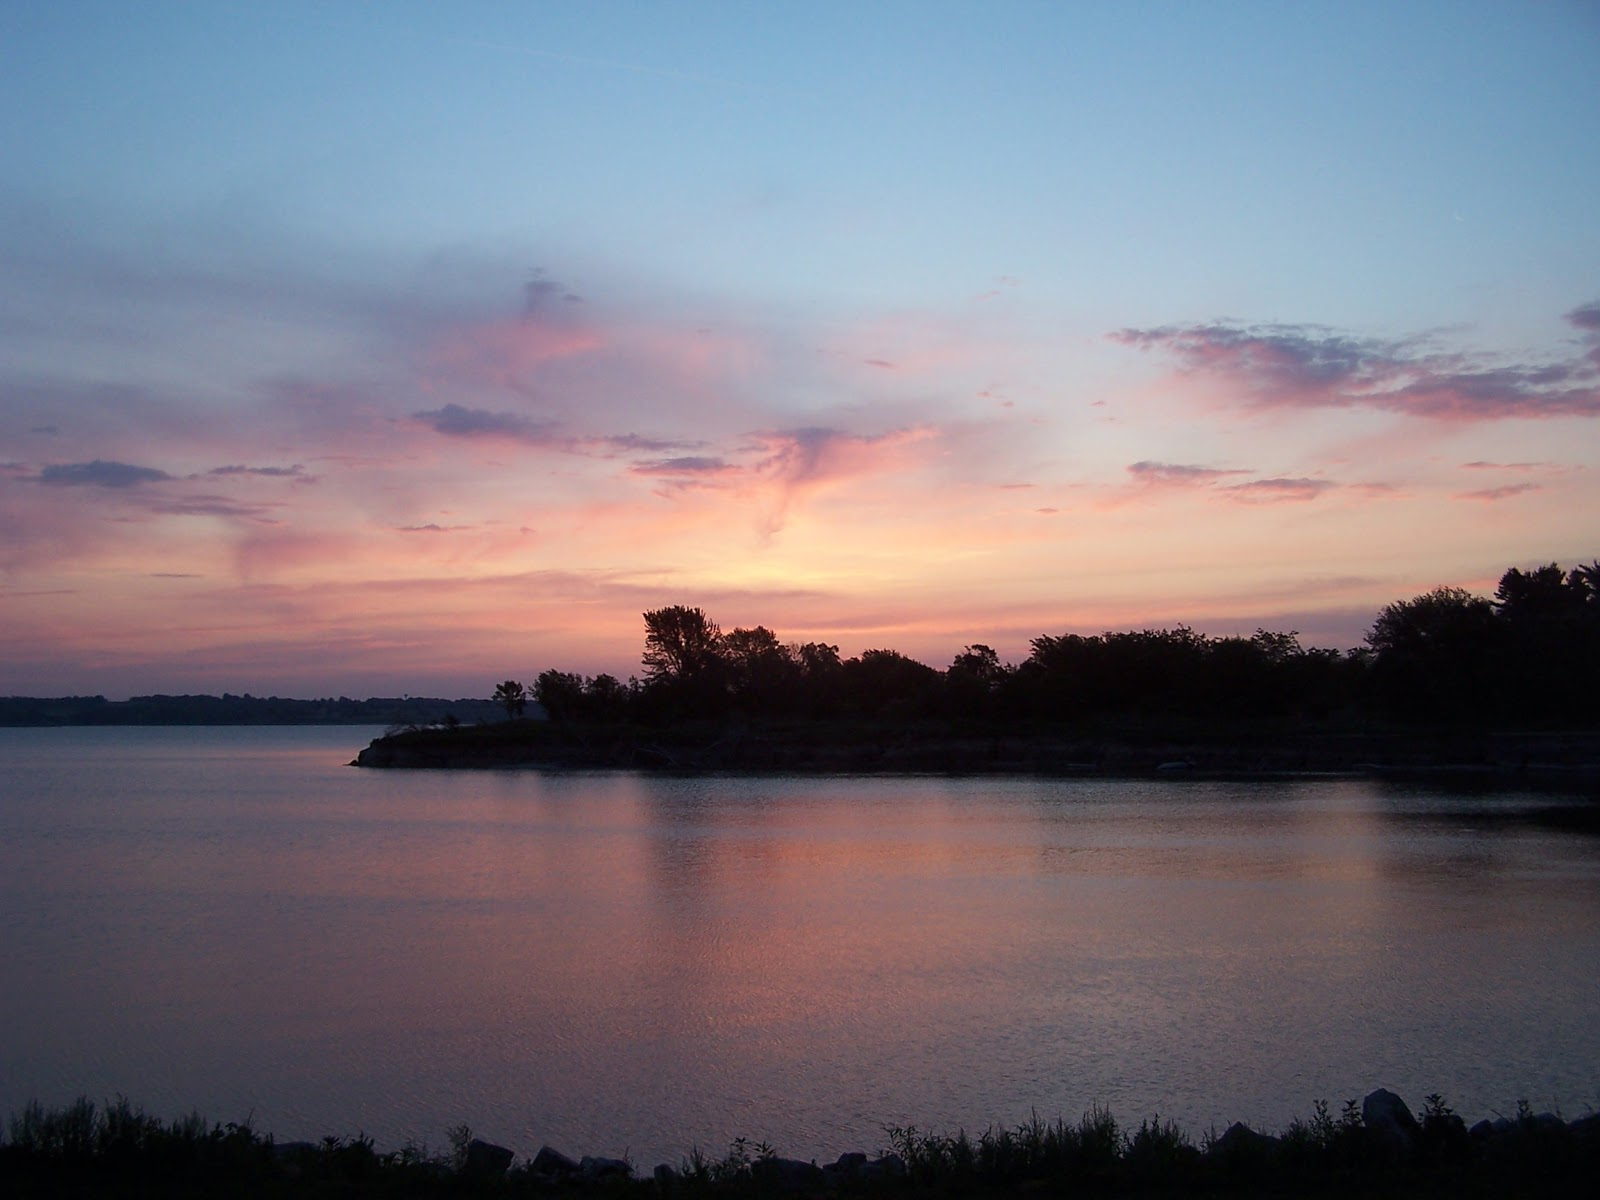 New Horizons Rv >> Bruce and MarySue's Thoughts and Adventures: Milford Lake ...